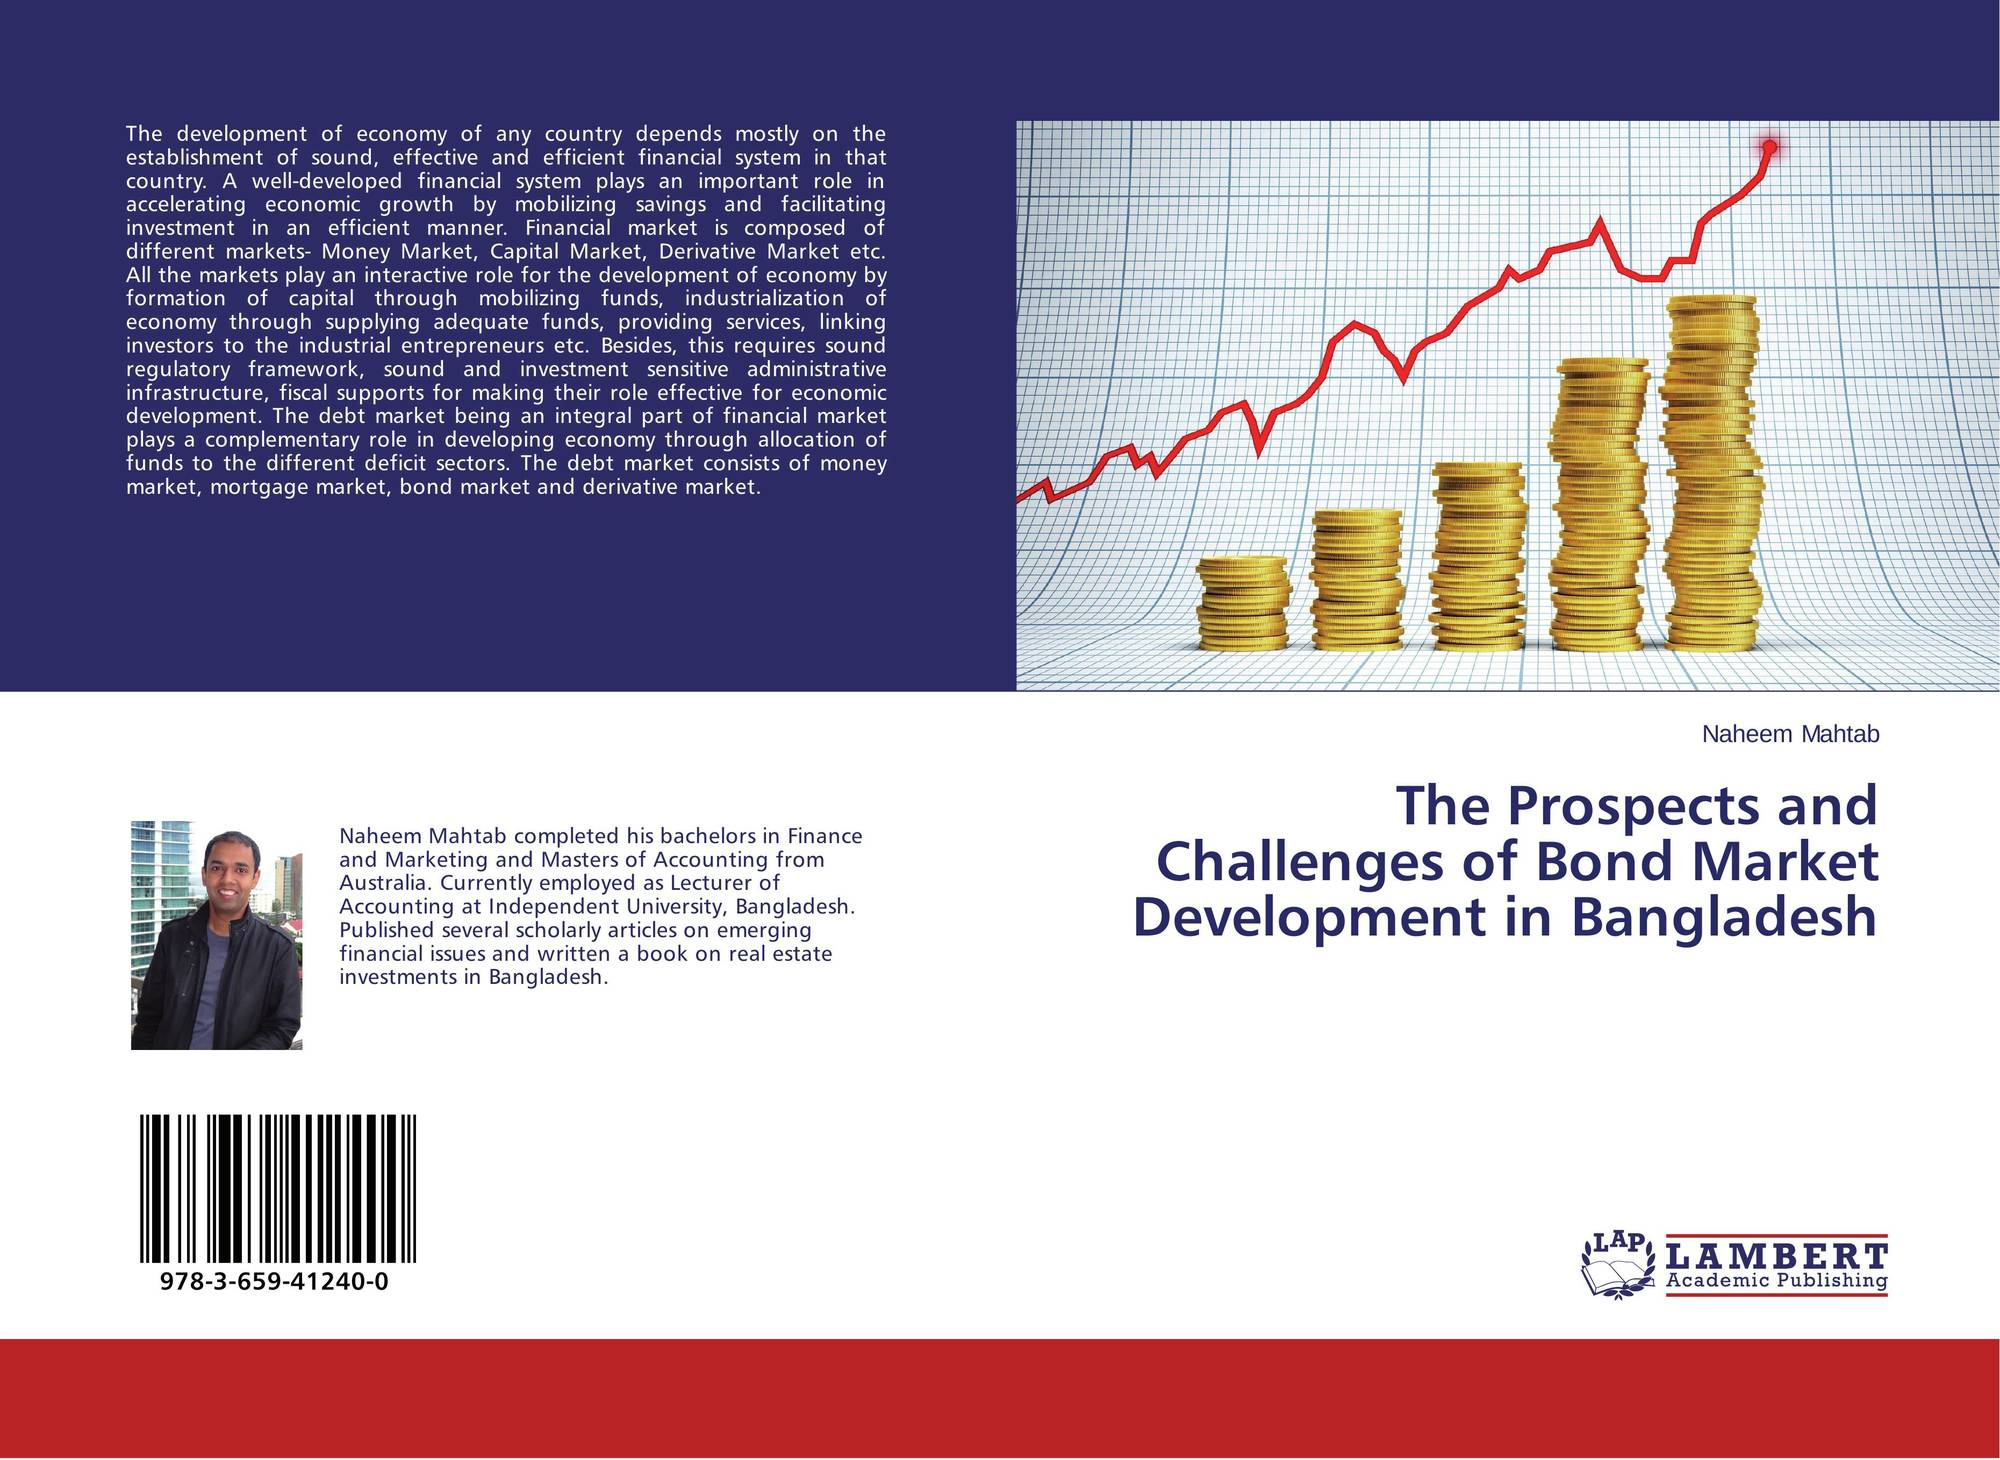 devolopment of bond market in bangladesh The us-based investment bank goldman sachs and german deutsche bank ag have offered bangladesh's government to raise up to $3bn fund from international bond market by issuing sovereign bonds for the nation's different infrastructure projects.